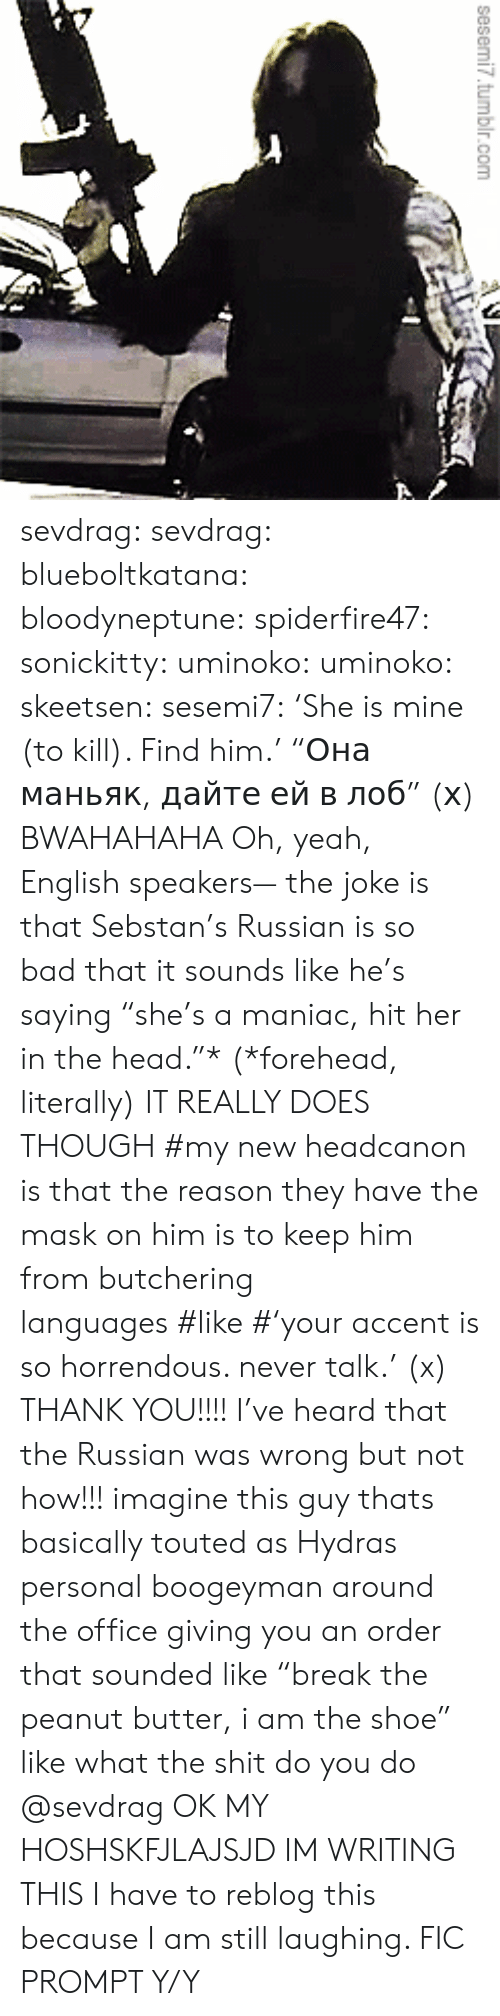 """Bad, Head, and Shit: sesemi7.tumbir.com  1 sevdrag: sevdrag:   blueboltkatana:   bloodyneptune:  spiderfire47:  sonickitty:   uminoko:  uminoko:  skeetsen:  sesemi7:  'She is mine (to kill). Find him.'  """"Она маньяк, дайте ей в лоб"""" (х)  BWAHAHAHA  Oh, yeah, English speakers— the joke is that Sebstan's Russian is so bad that it sounds like he's saying """"she's a maniac, hit her in the head.""""* (*forehead, literally) IT REALLY DOES THOUGH   #my new headcanon is that the reason they have the mask on him is to keep him from butchering languages#like#'your accent is so horrendous. never talk.'(x)   THANK YOU!!!! I've heard that the Russian was wrong but not how!!!  imagine this guy thats basically touted as Hydras personal boogeyman around the office giving you an order that sounded like """"break the peanut butter, i am the shoe"""" like what the shit do you do   @sevdrag    OK MY HOSHSKFJLAJSJD  IM WRITING THIS   I have to reblog this because I am still laughing. FIC PROMPT Y/Y"""